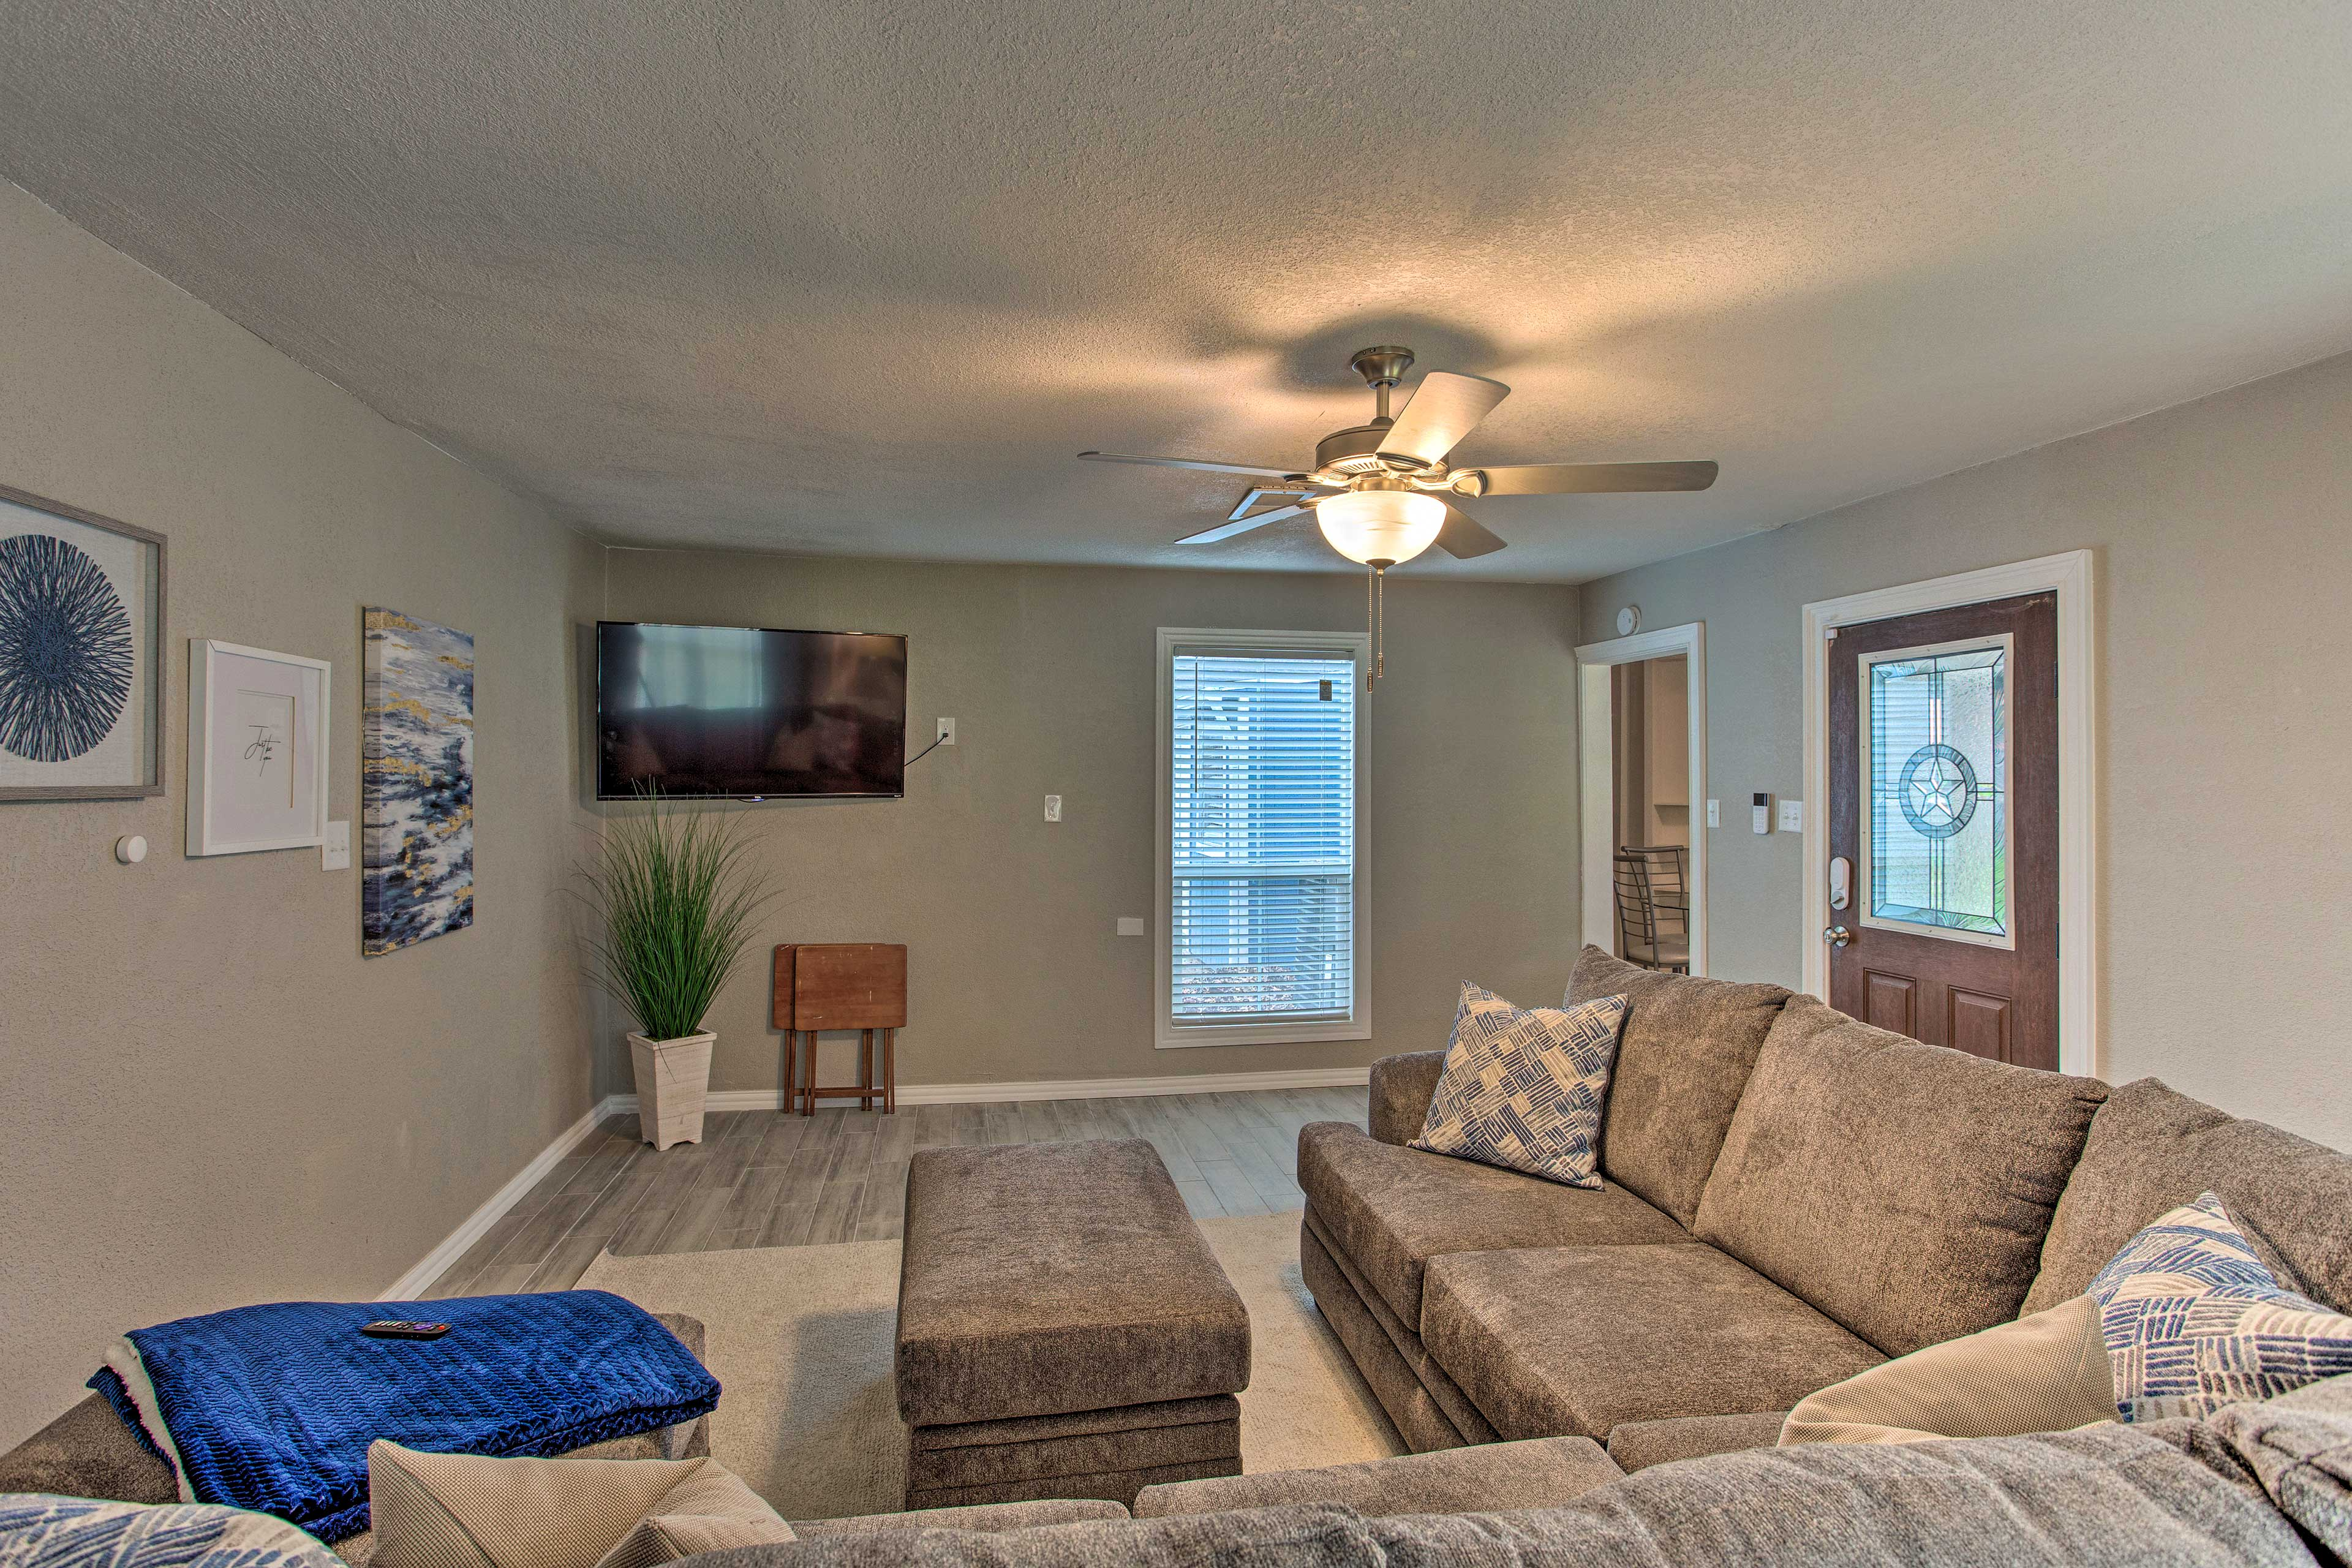 Kick your feet up in this vacation rental daily!